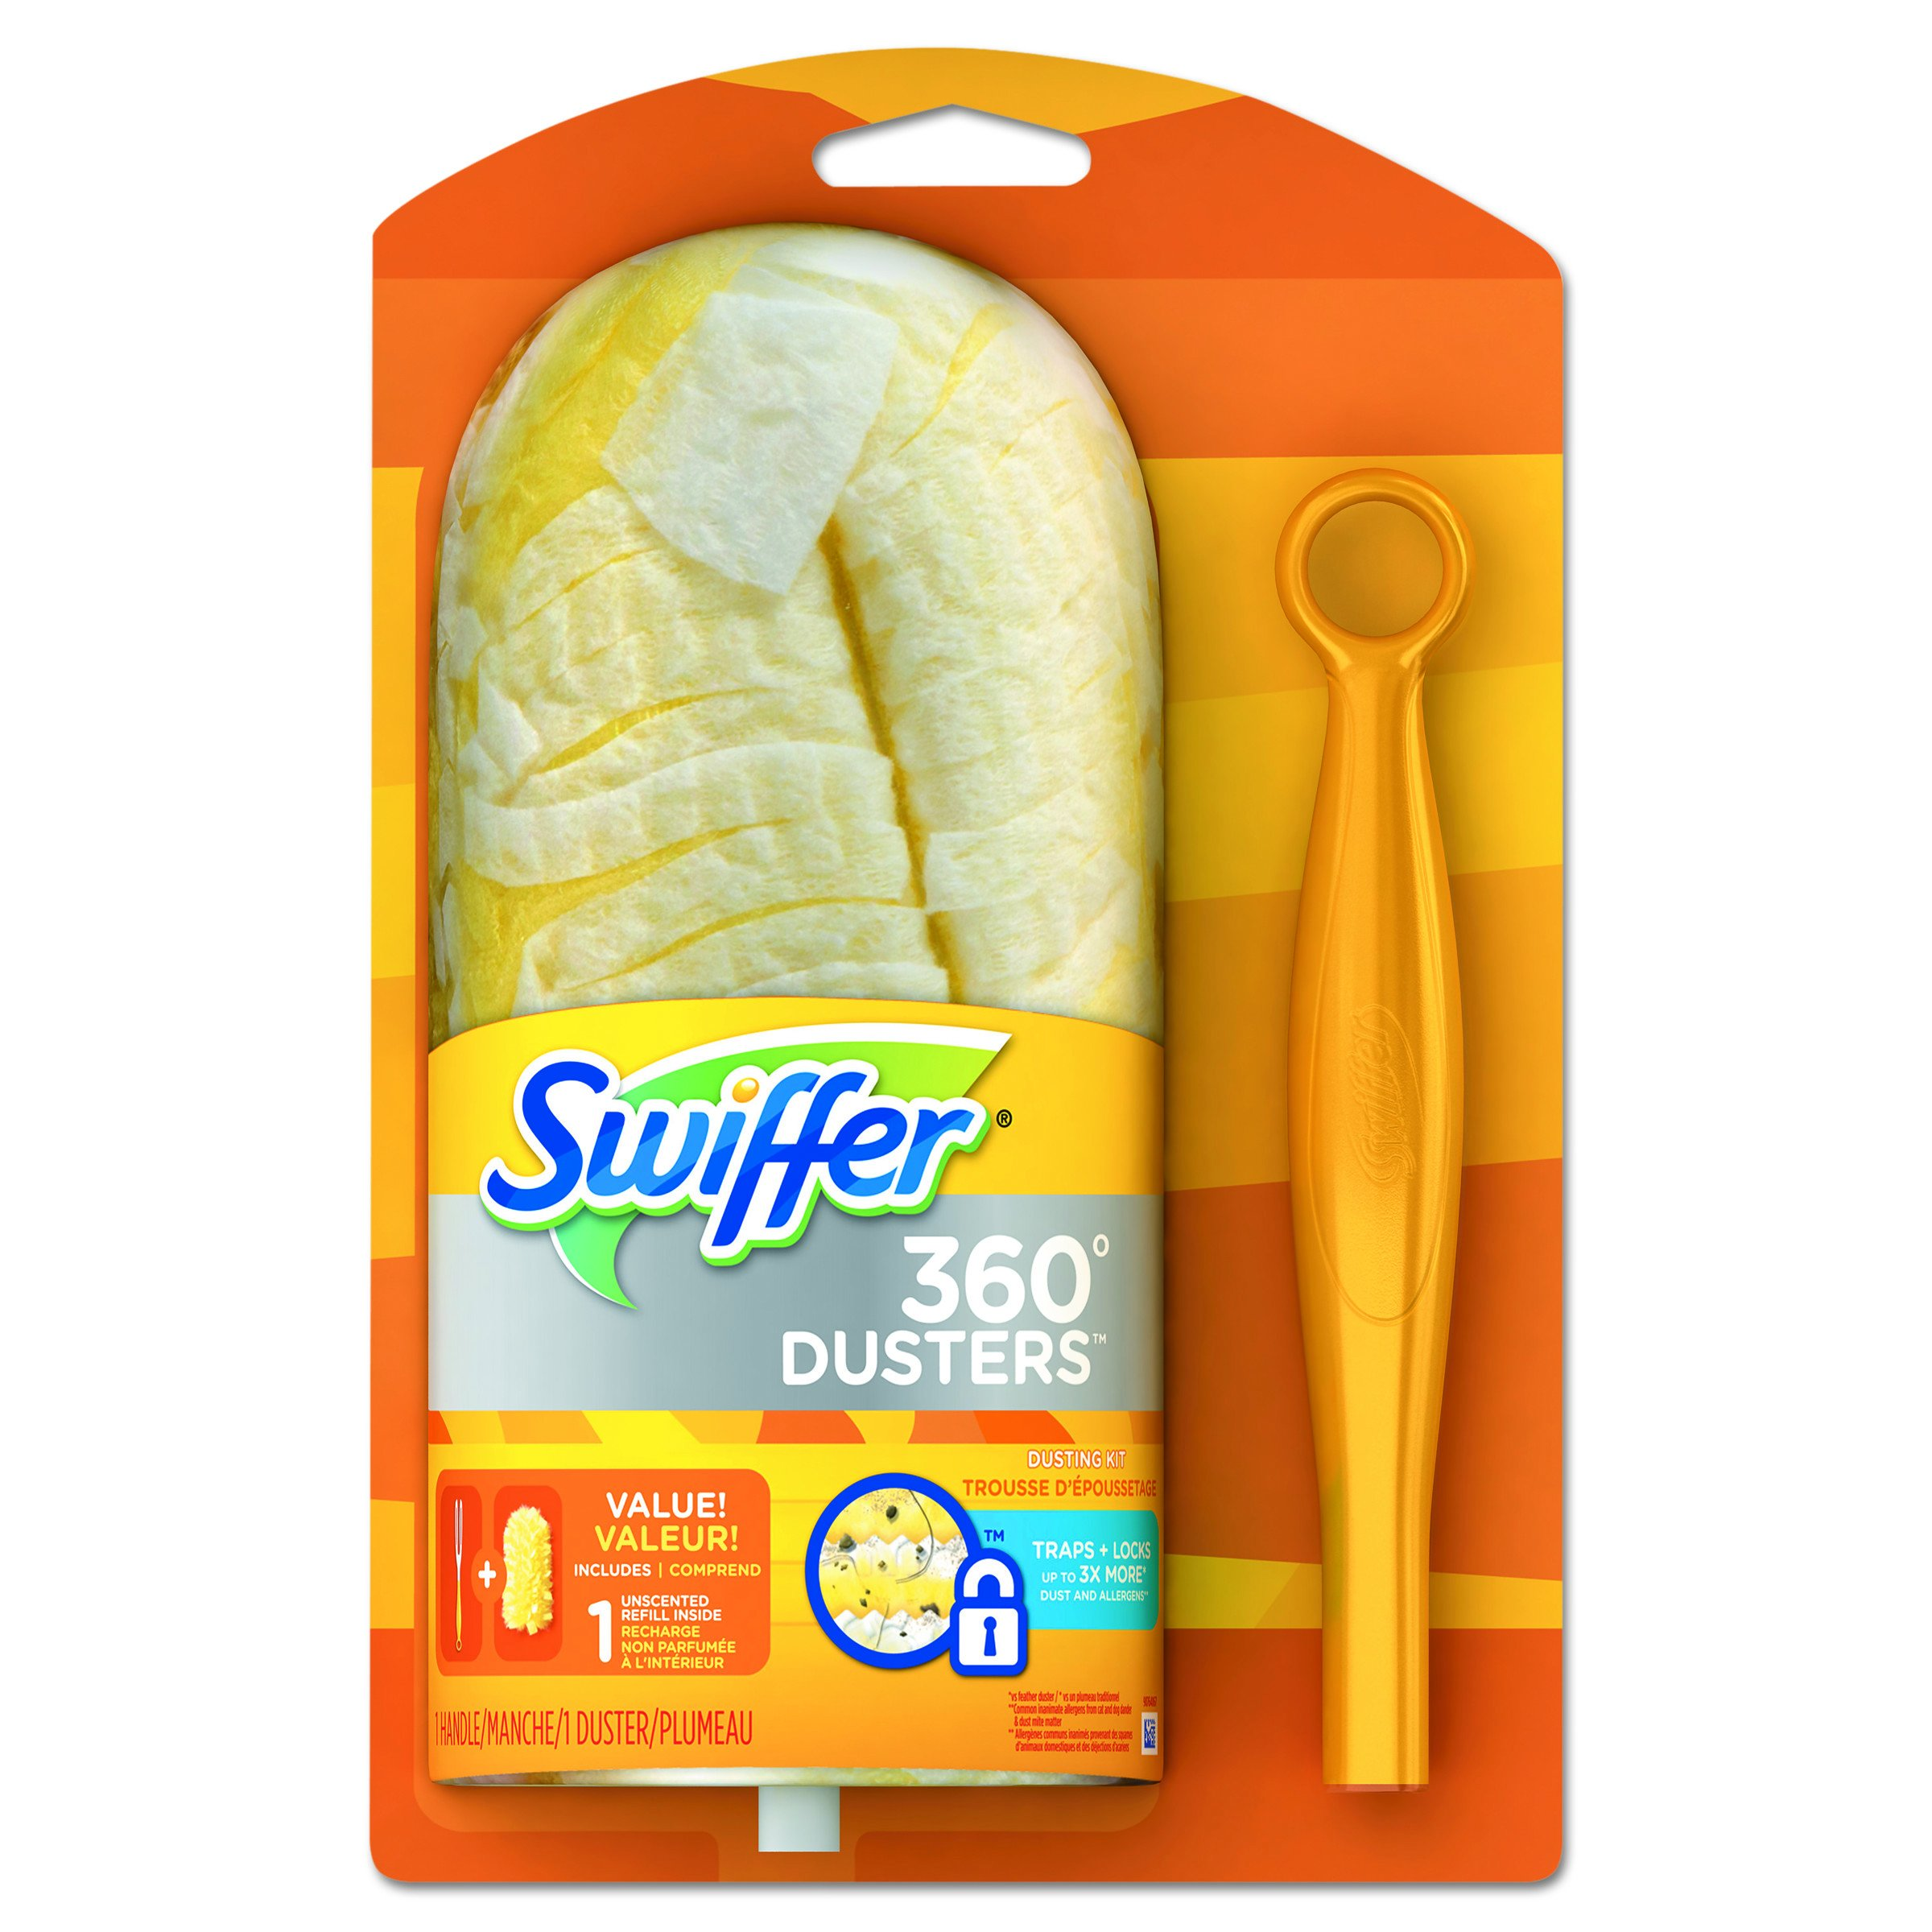 Swiffer PGC 16942 360 Duster Starter Kit, Handle with One Disposable Duster (Pack of 2)